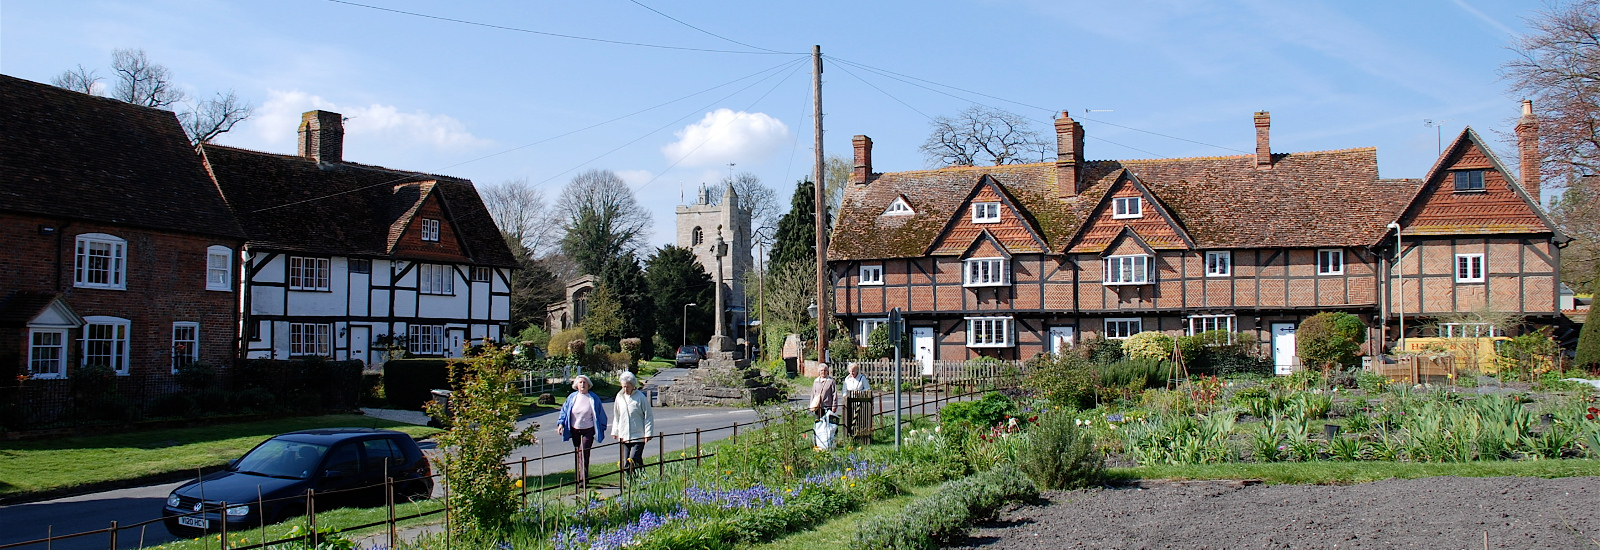 East Hagbourne Village - Oxfordshire